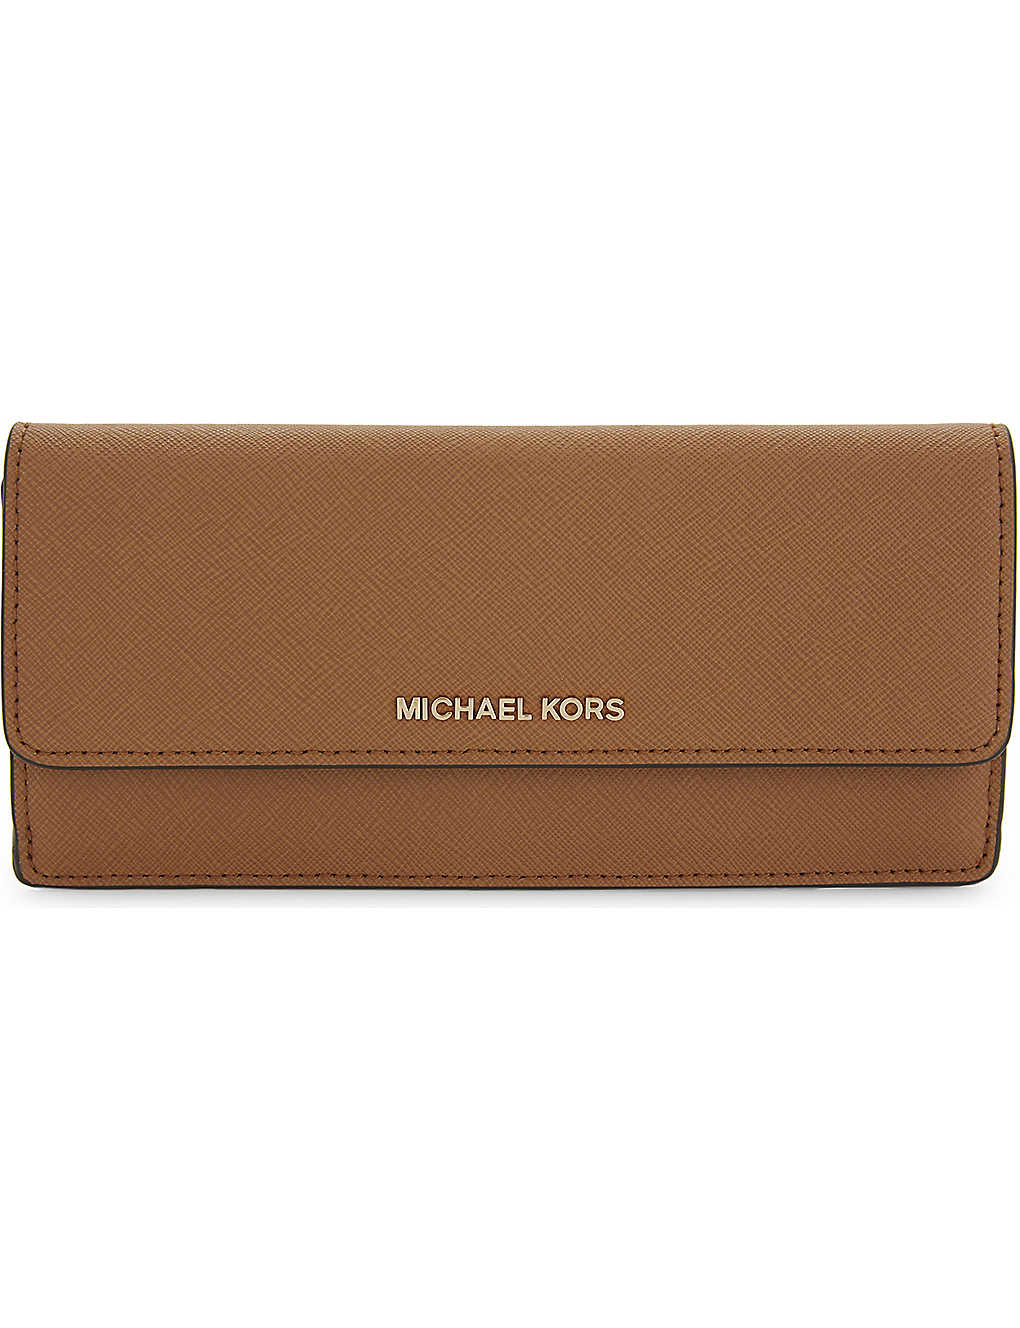 c0176a86dda1 MICHAEL MICHAEL KORS - Jet Set Saffiano leather wallet | Selfridges.com